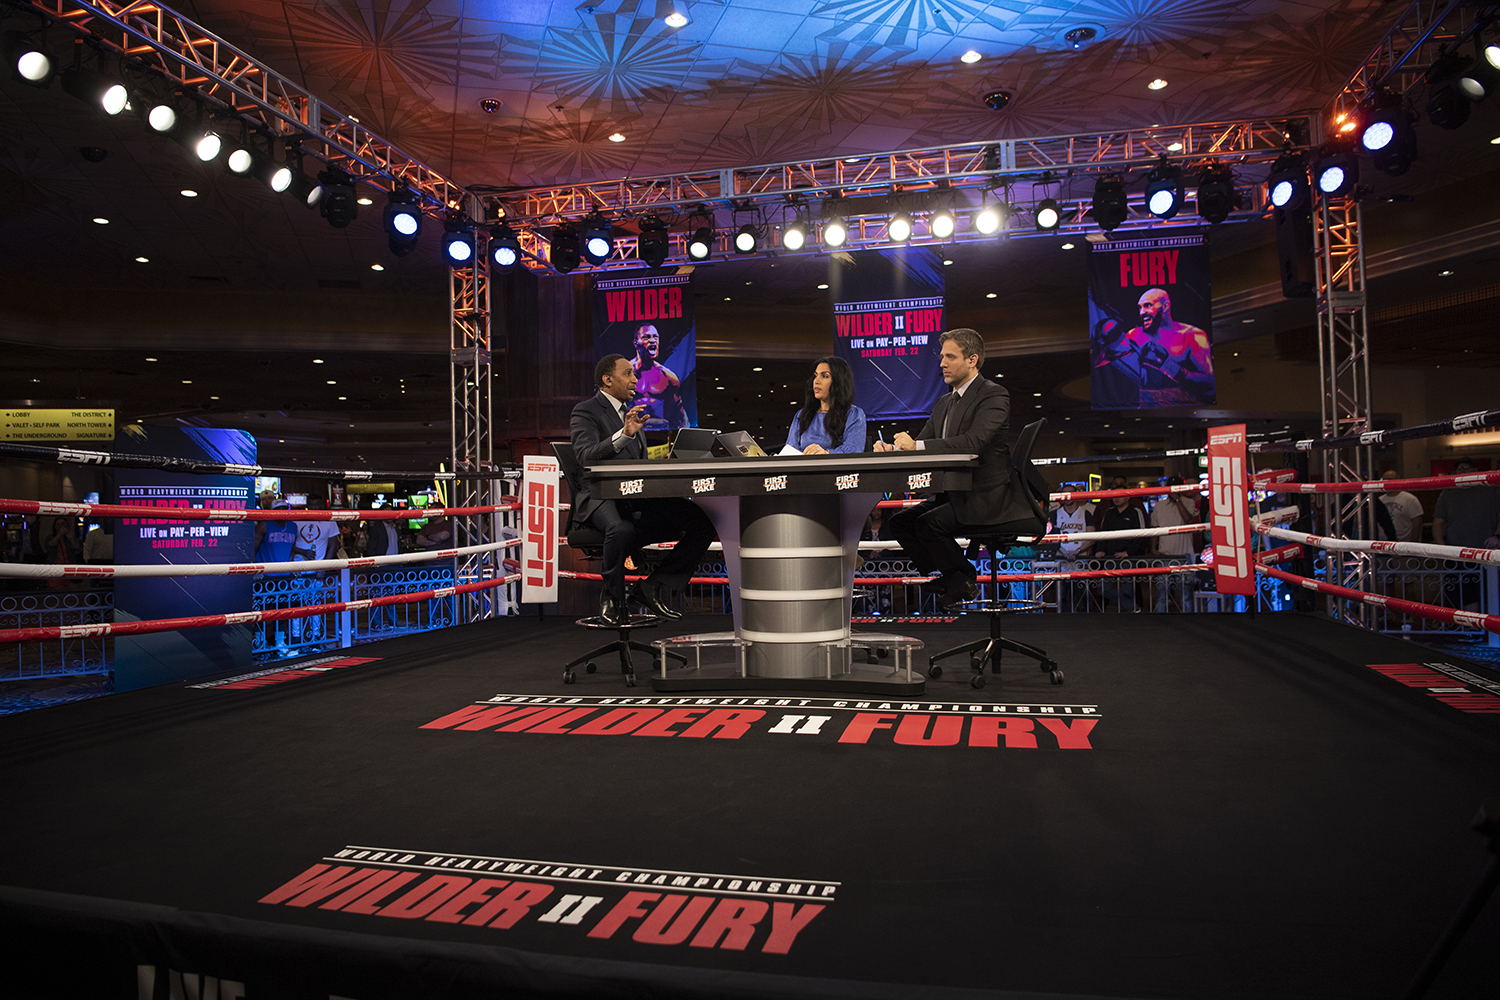 Wilder Vs Fury Ii Espn Fox Sports Team Up On Outsize Boxing Production In Vegas